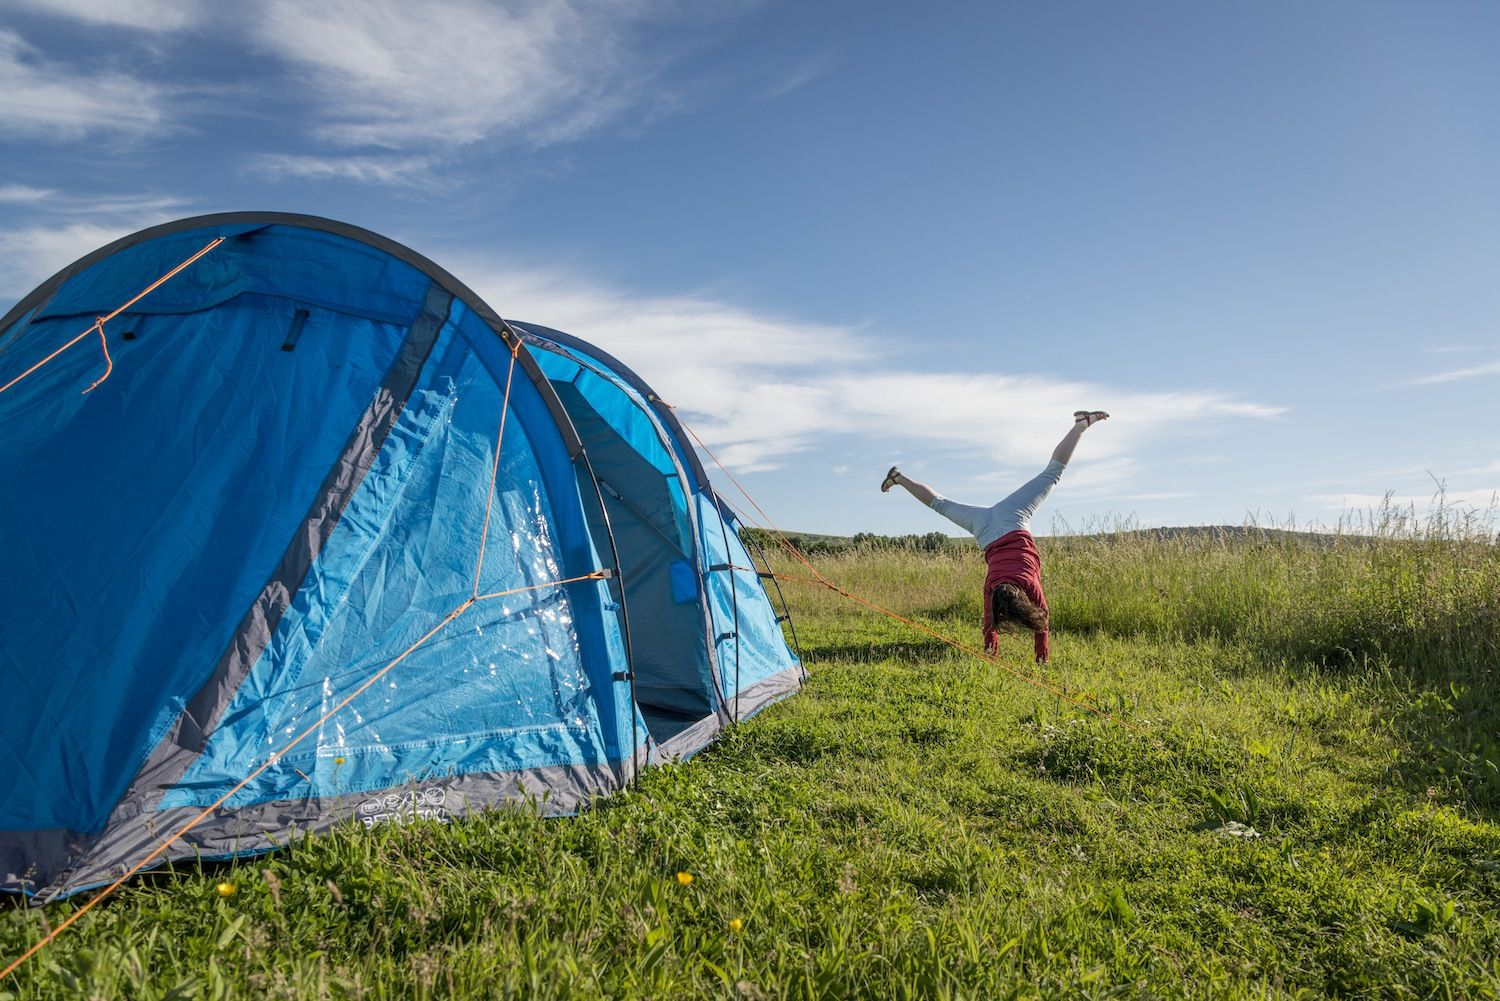 Campsites in South East England – Top campsites in the south-east of England